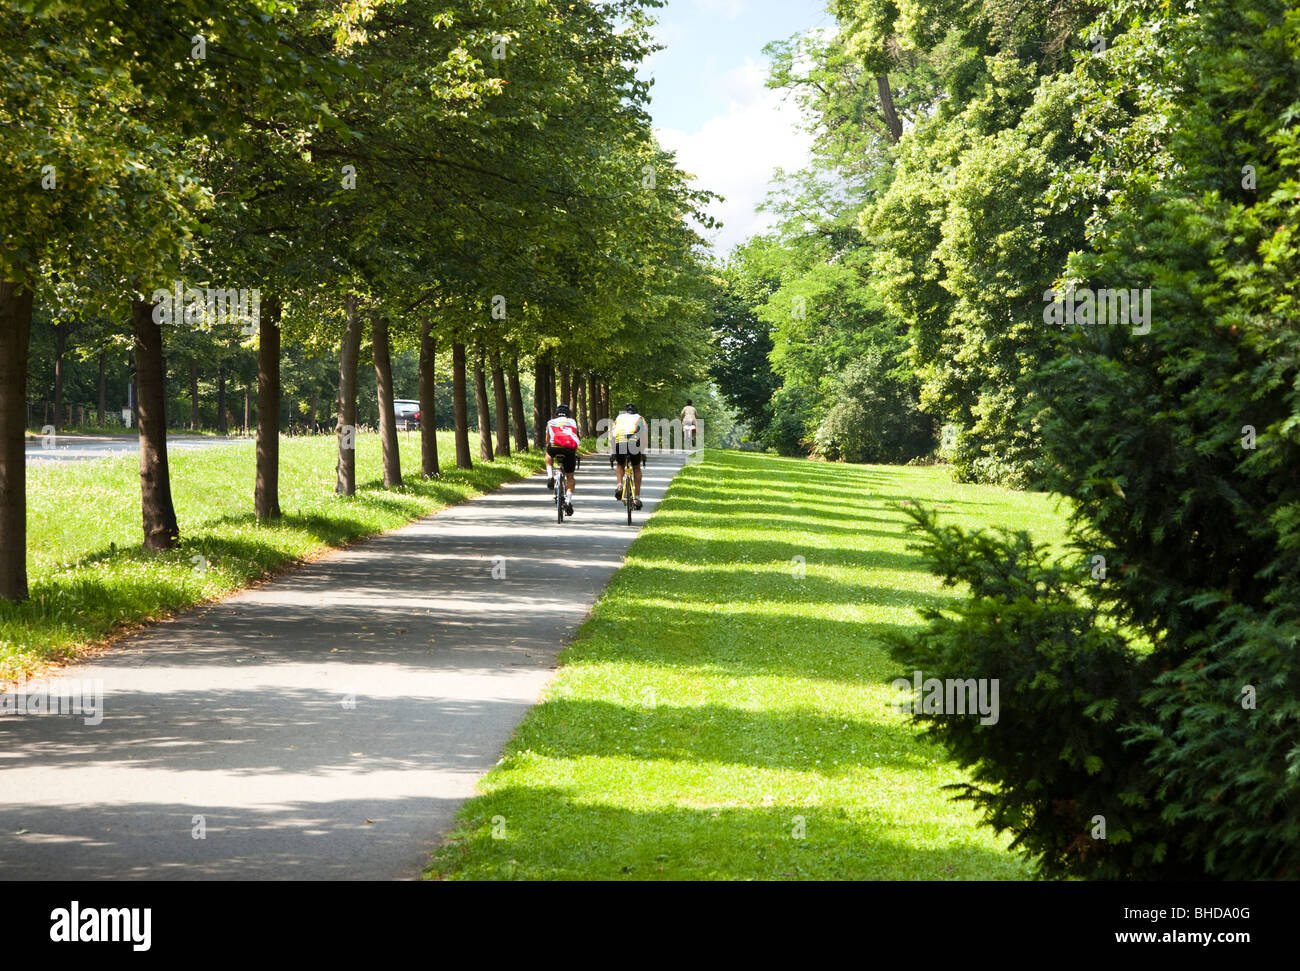 Cyclists riding on a cycle path on the edge of the city park in Weimar, Germany, Europe - Stock Image